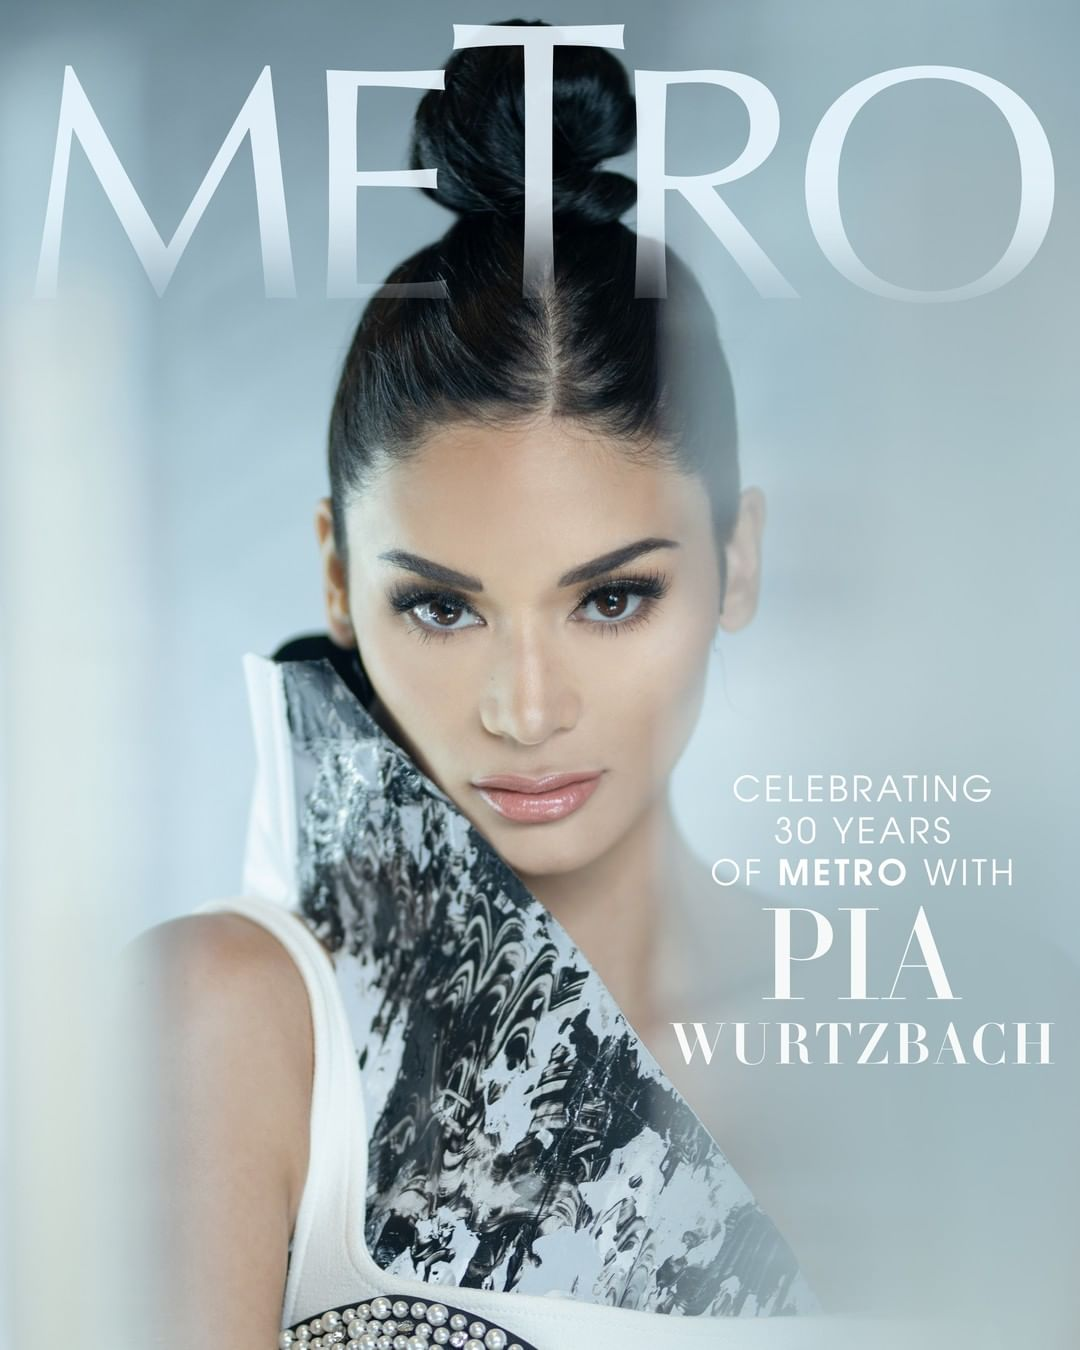 Pia Wurtzbach for #Metro30's anniversary issue